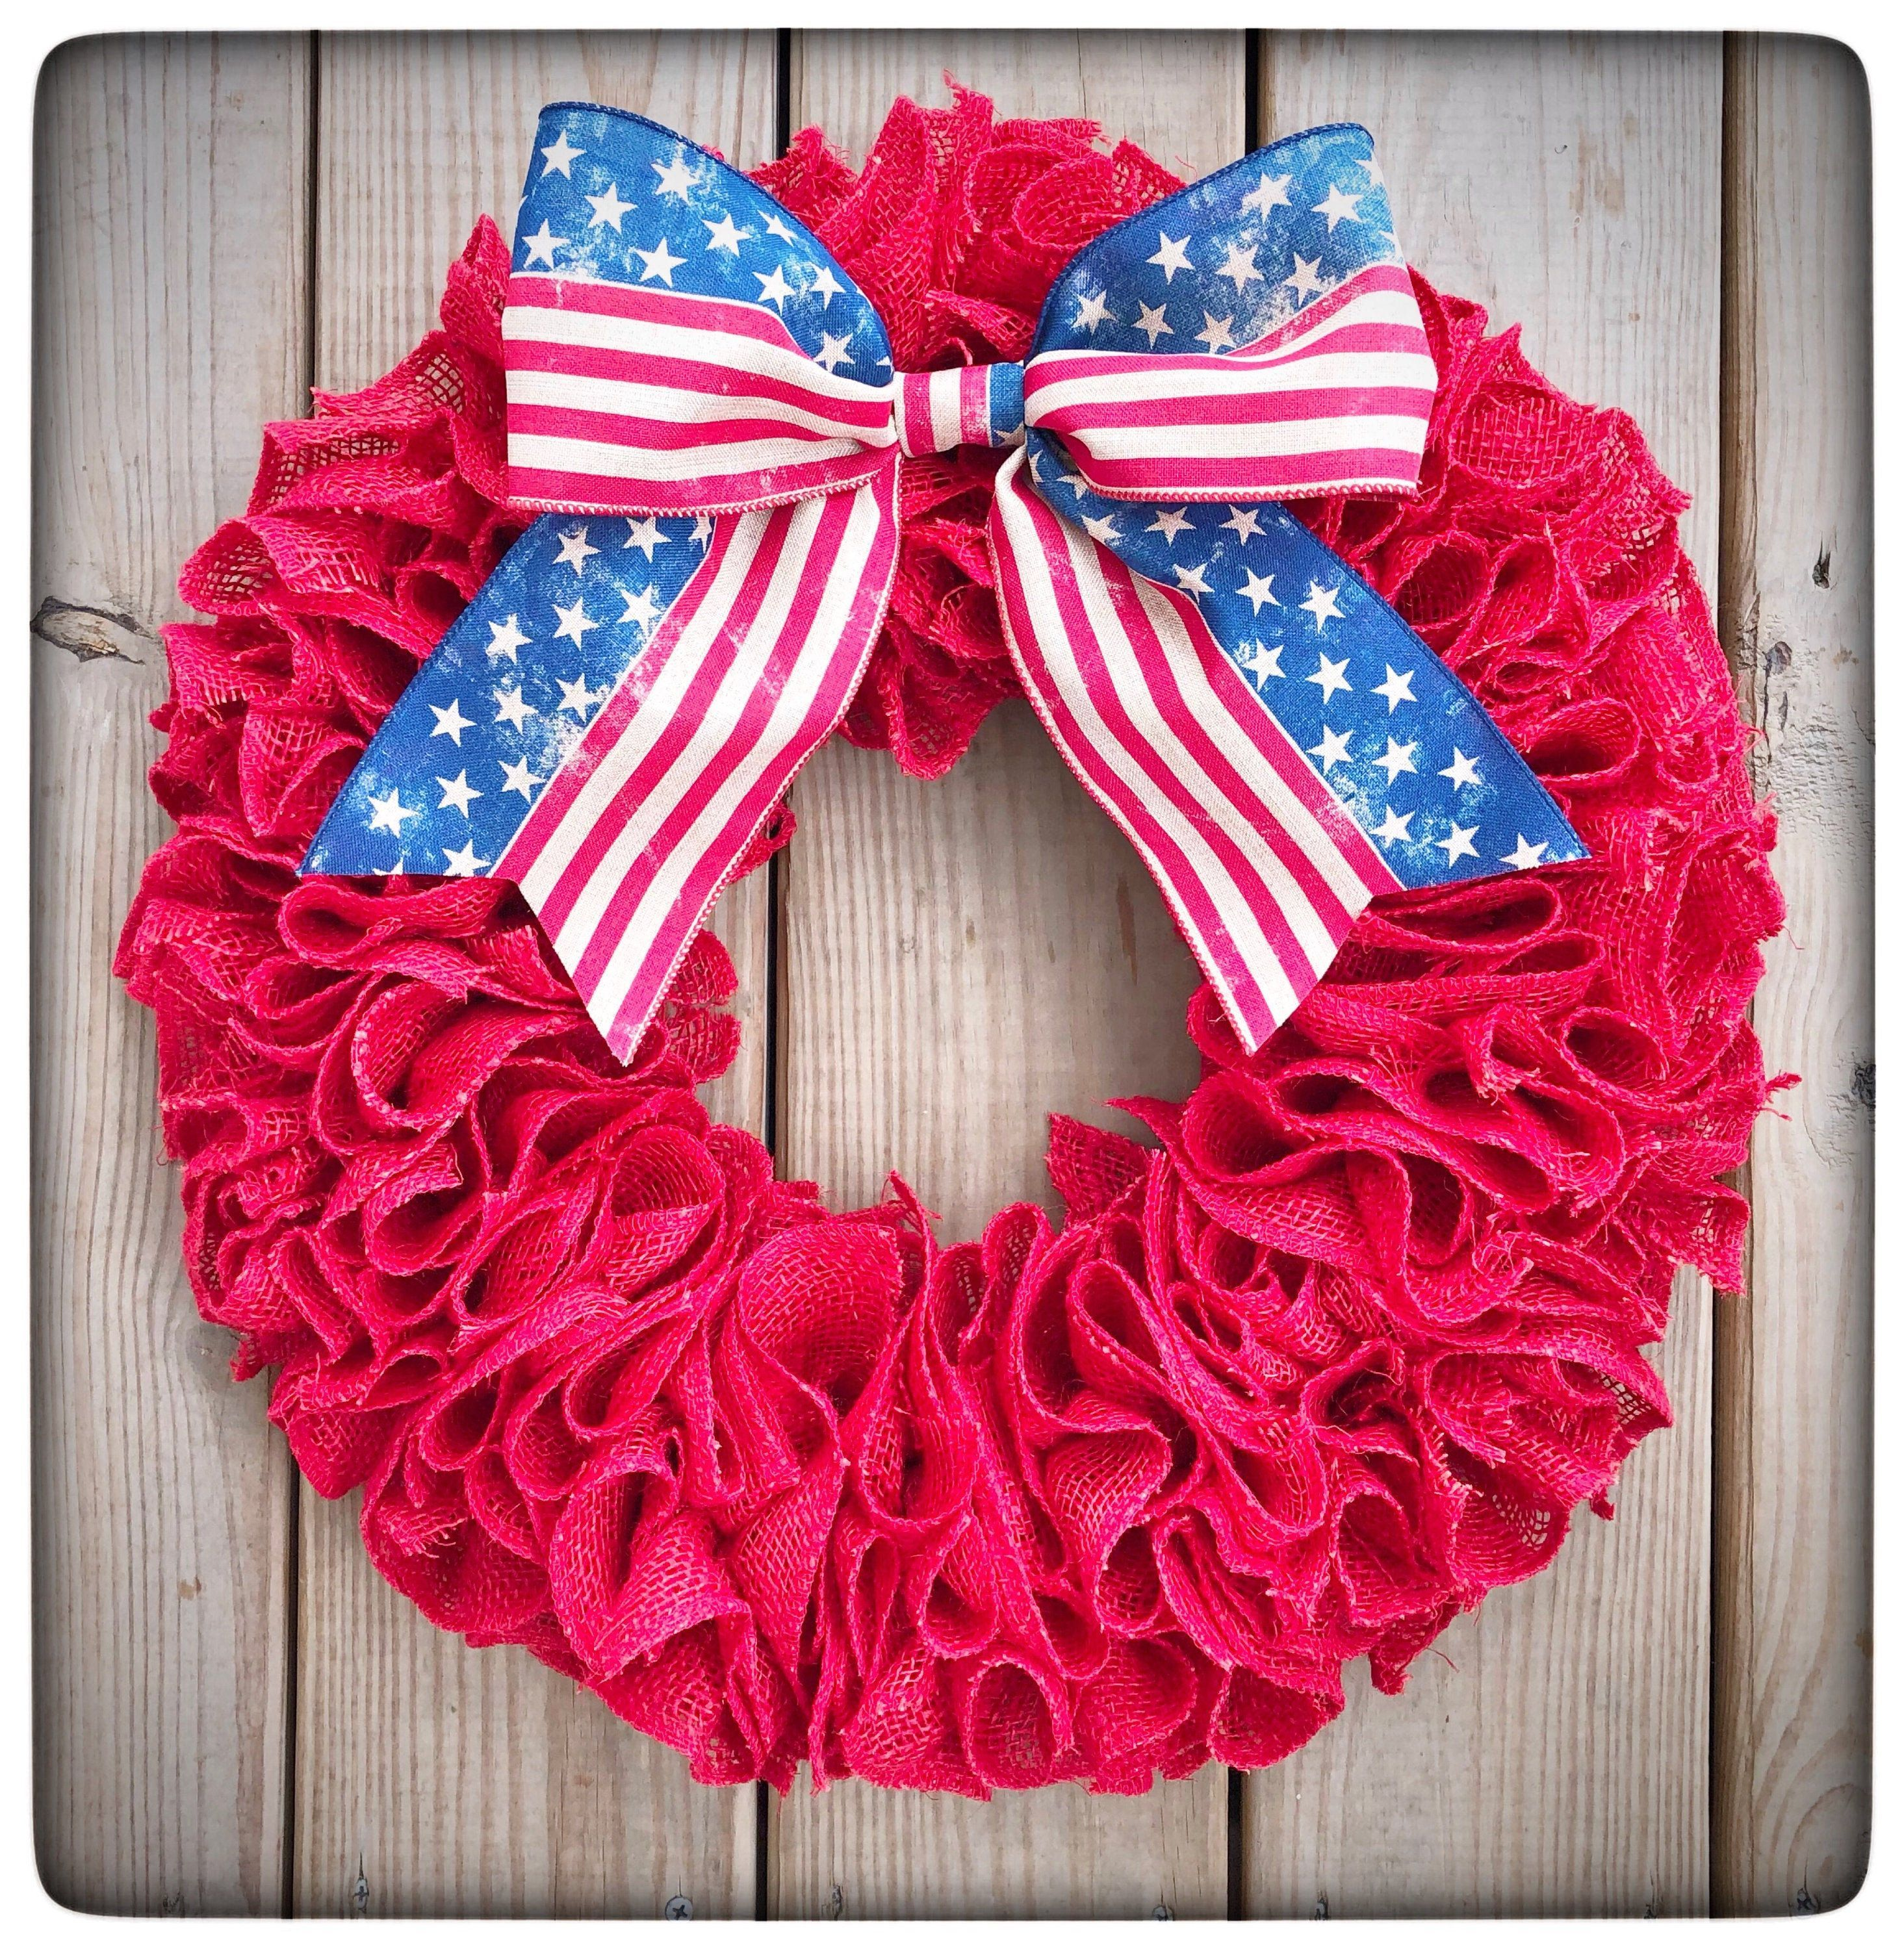 year round everyday 4th of July 18 burlap wreath patriotic red white and blue front door